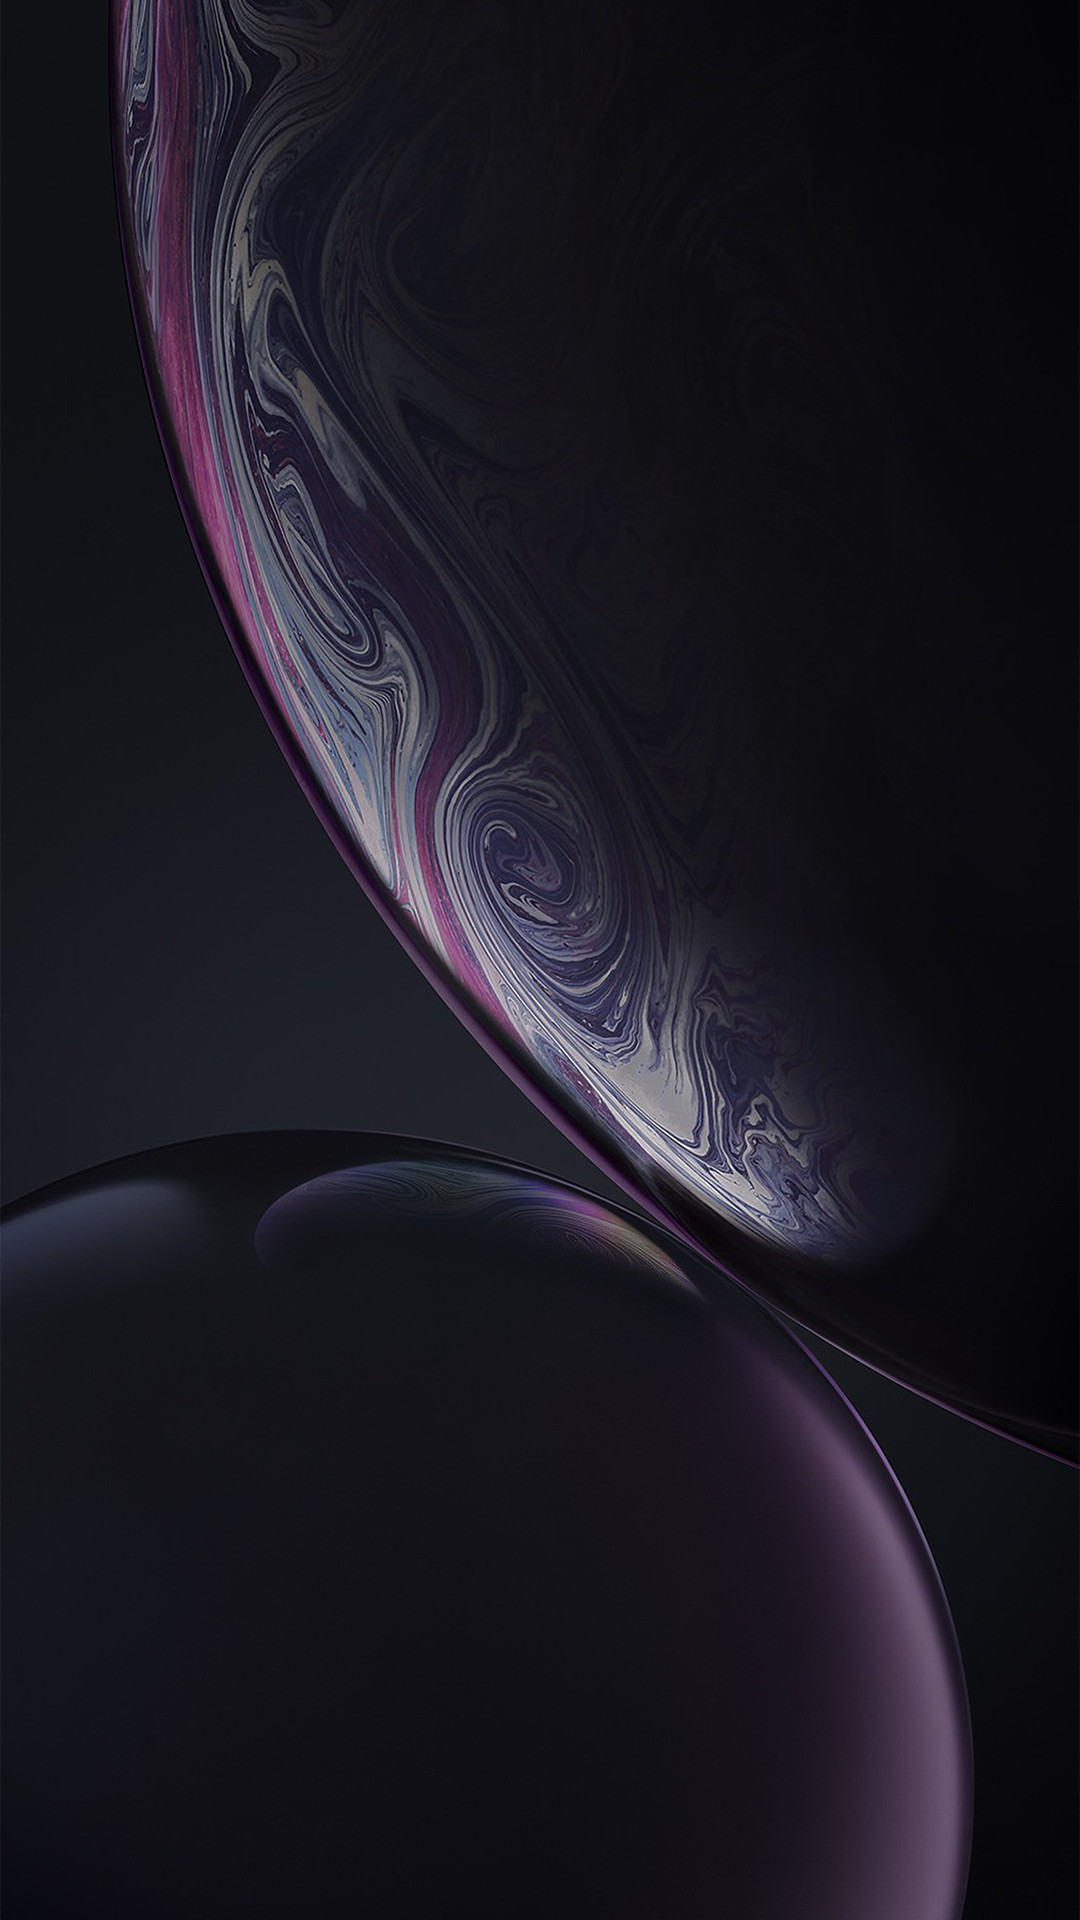 Dynamic Wallpapers For Iphone 6s 81 Images